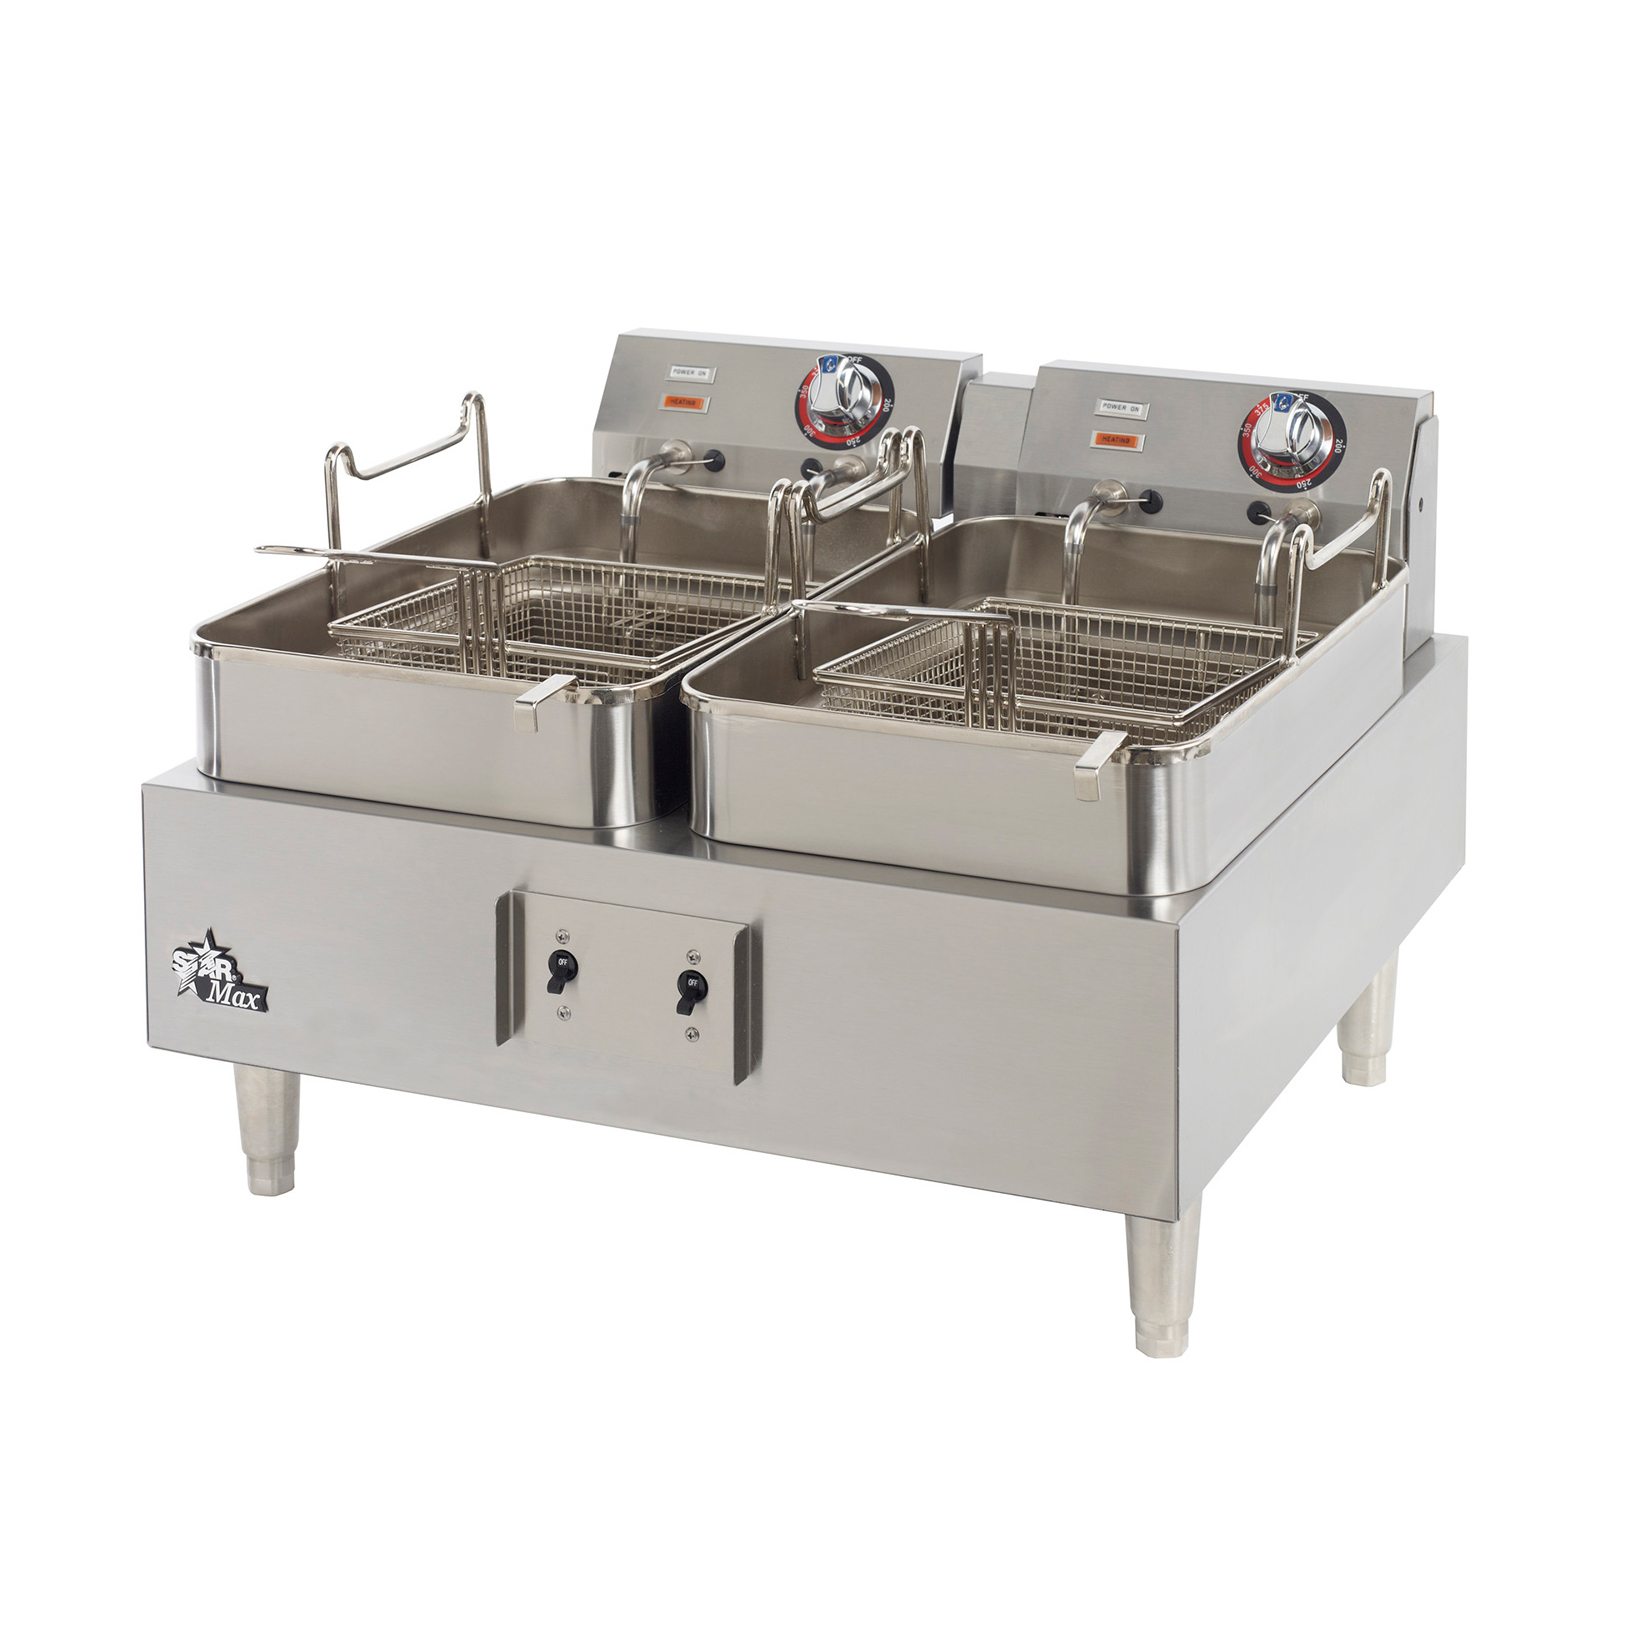 530TF Star fryer, electric, countertop, split pot